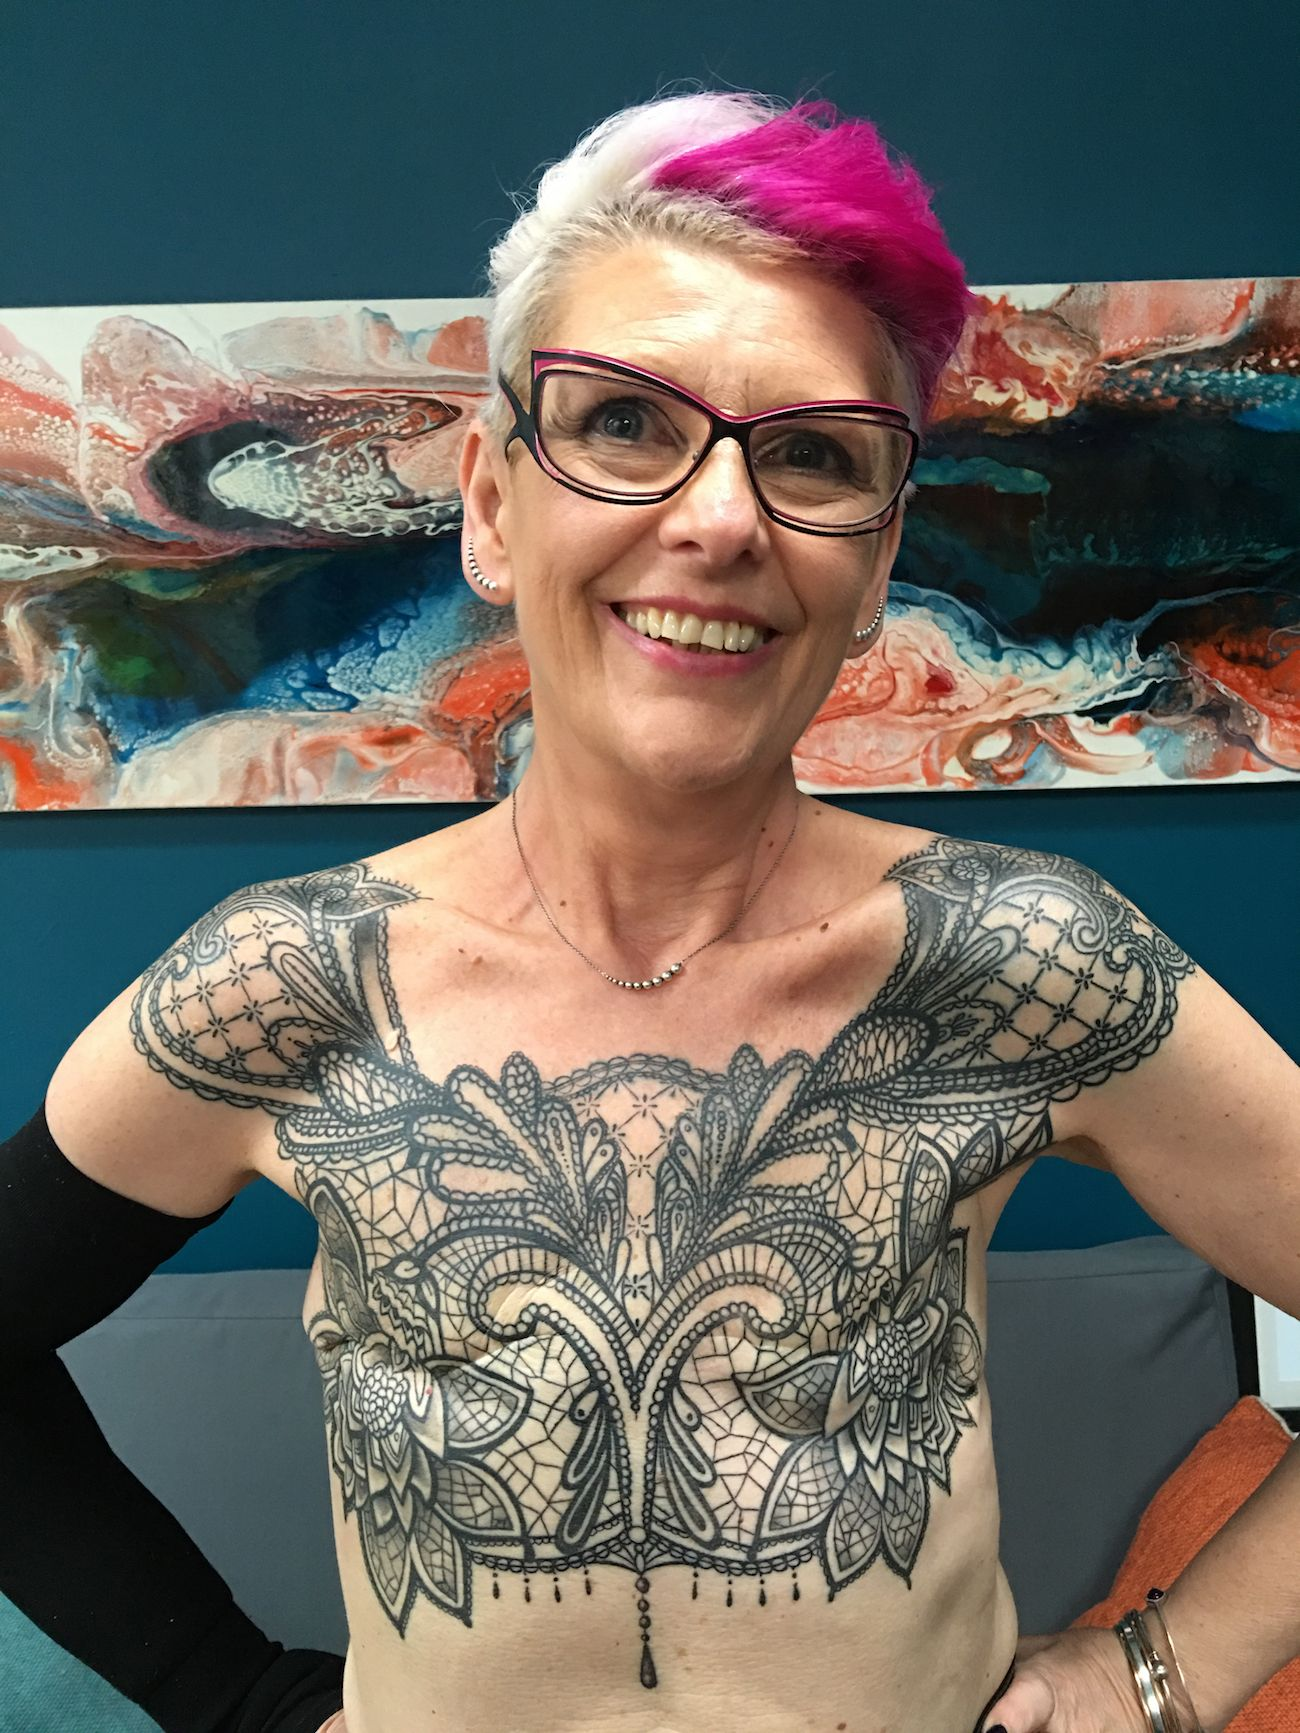 Woman Gets Chest Tattoo To Cover Her Mastectomy Scars